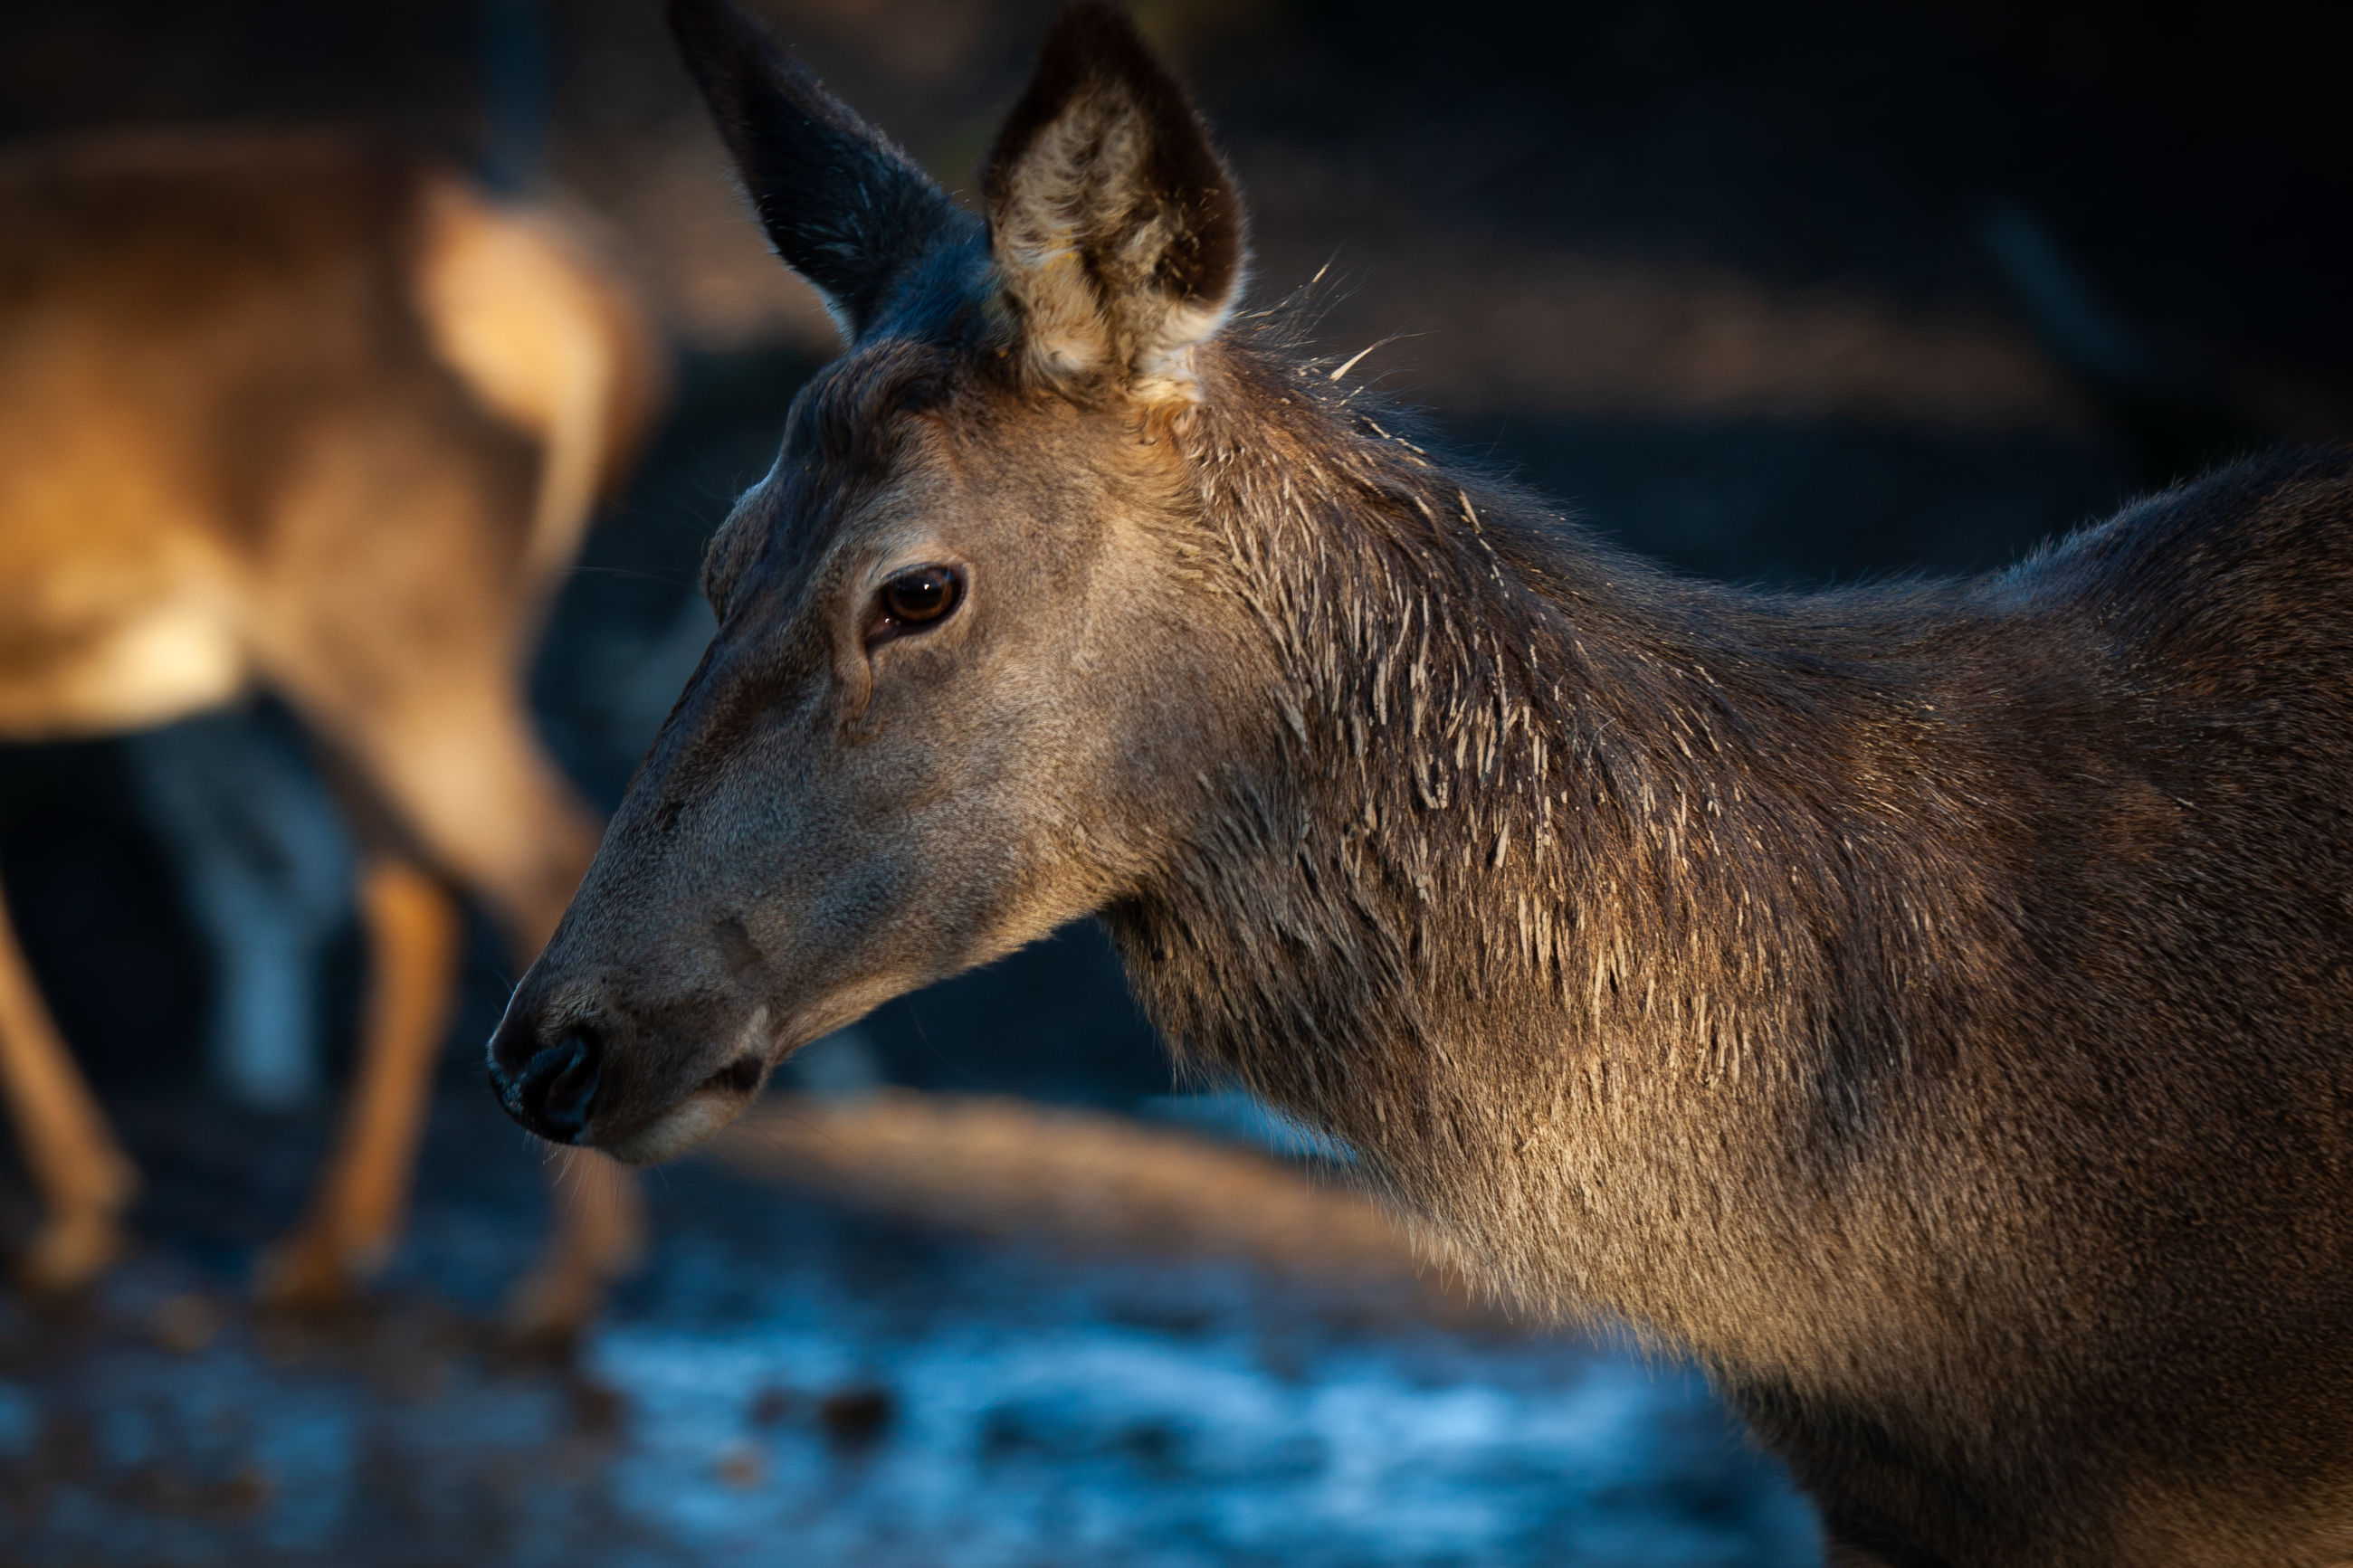 animal, mammal, animal themes, animal wildlife, one animal, vertebrate, animals in the wild, no people, close-up, focus on foreground, brown, looking away, animal body part, looking, domestic animals, nature, animal head, selective focus, outdoors, land, herbivorous, profile view